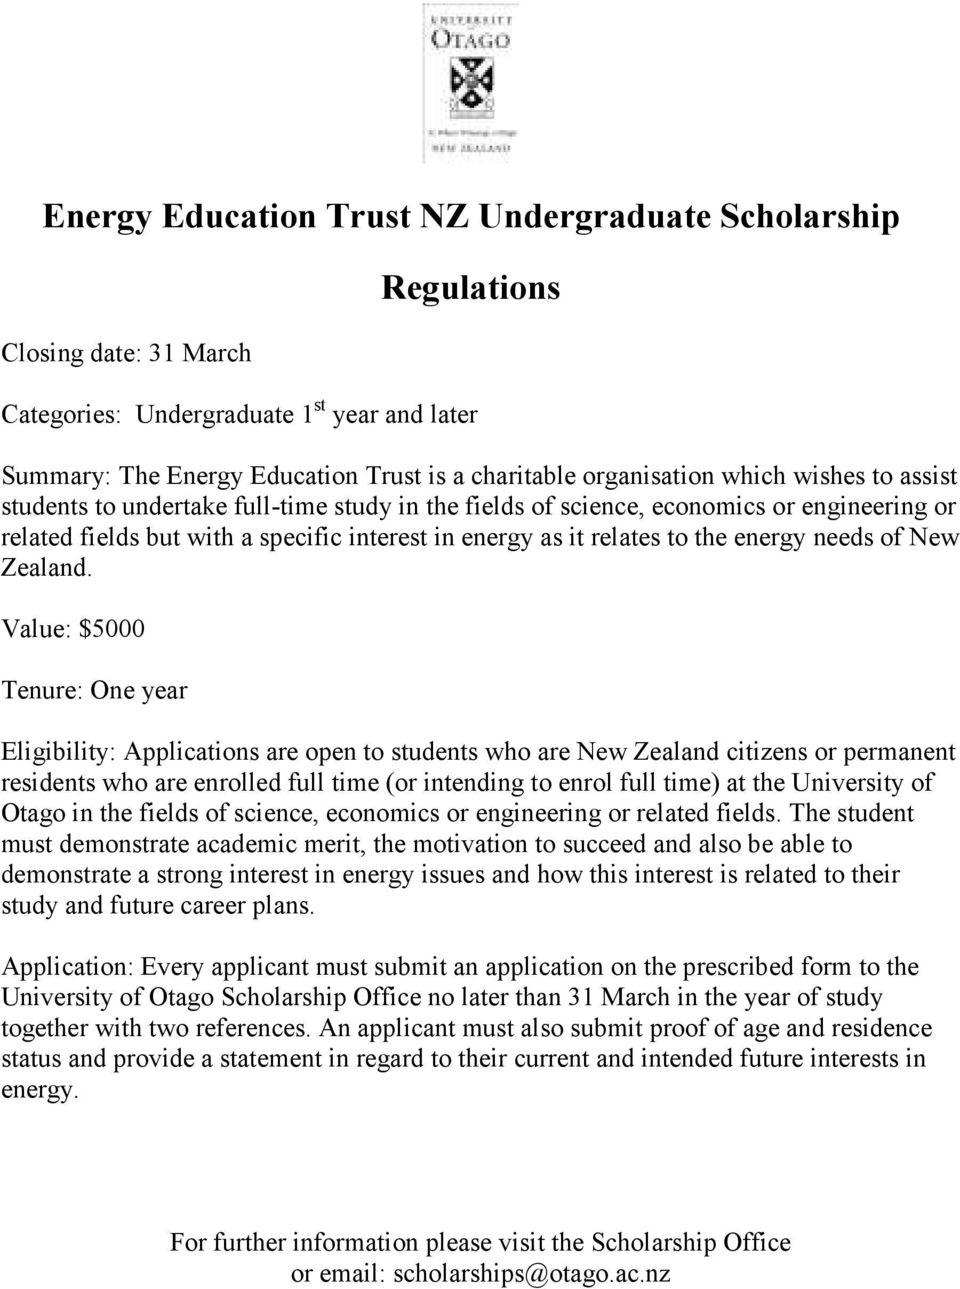 Value: $5000 Tenure: One year Eligibility: Applications are open to students who are New Zealand citizens or permanent residents who are enrolled full time (or intending to enrol full time) at the